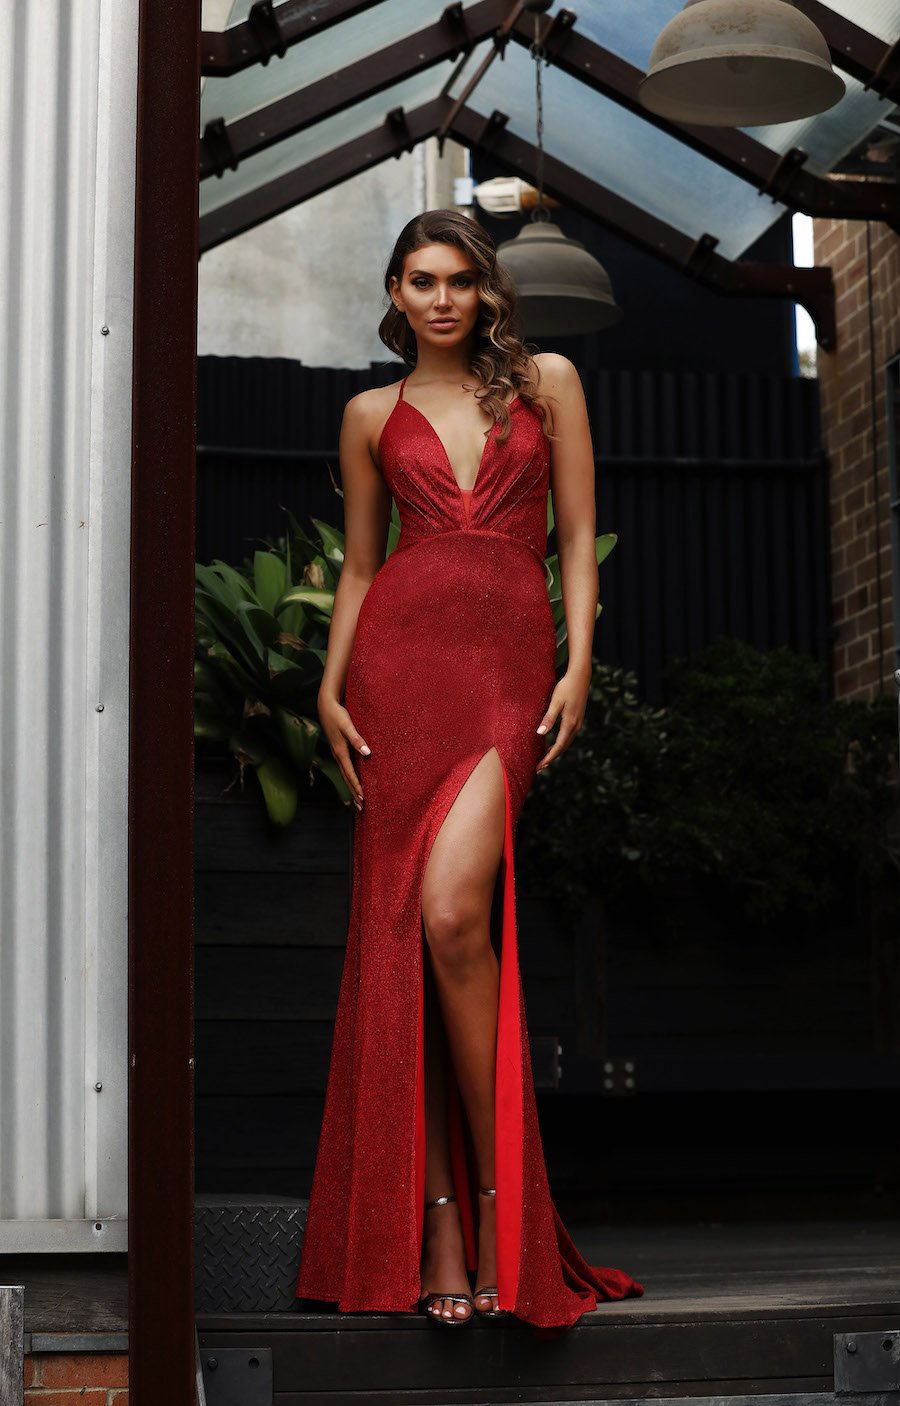 Low cut full length gown in shimmer fabric with lace up back and front split